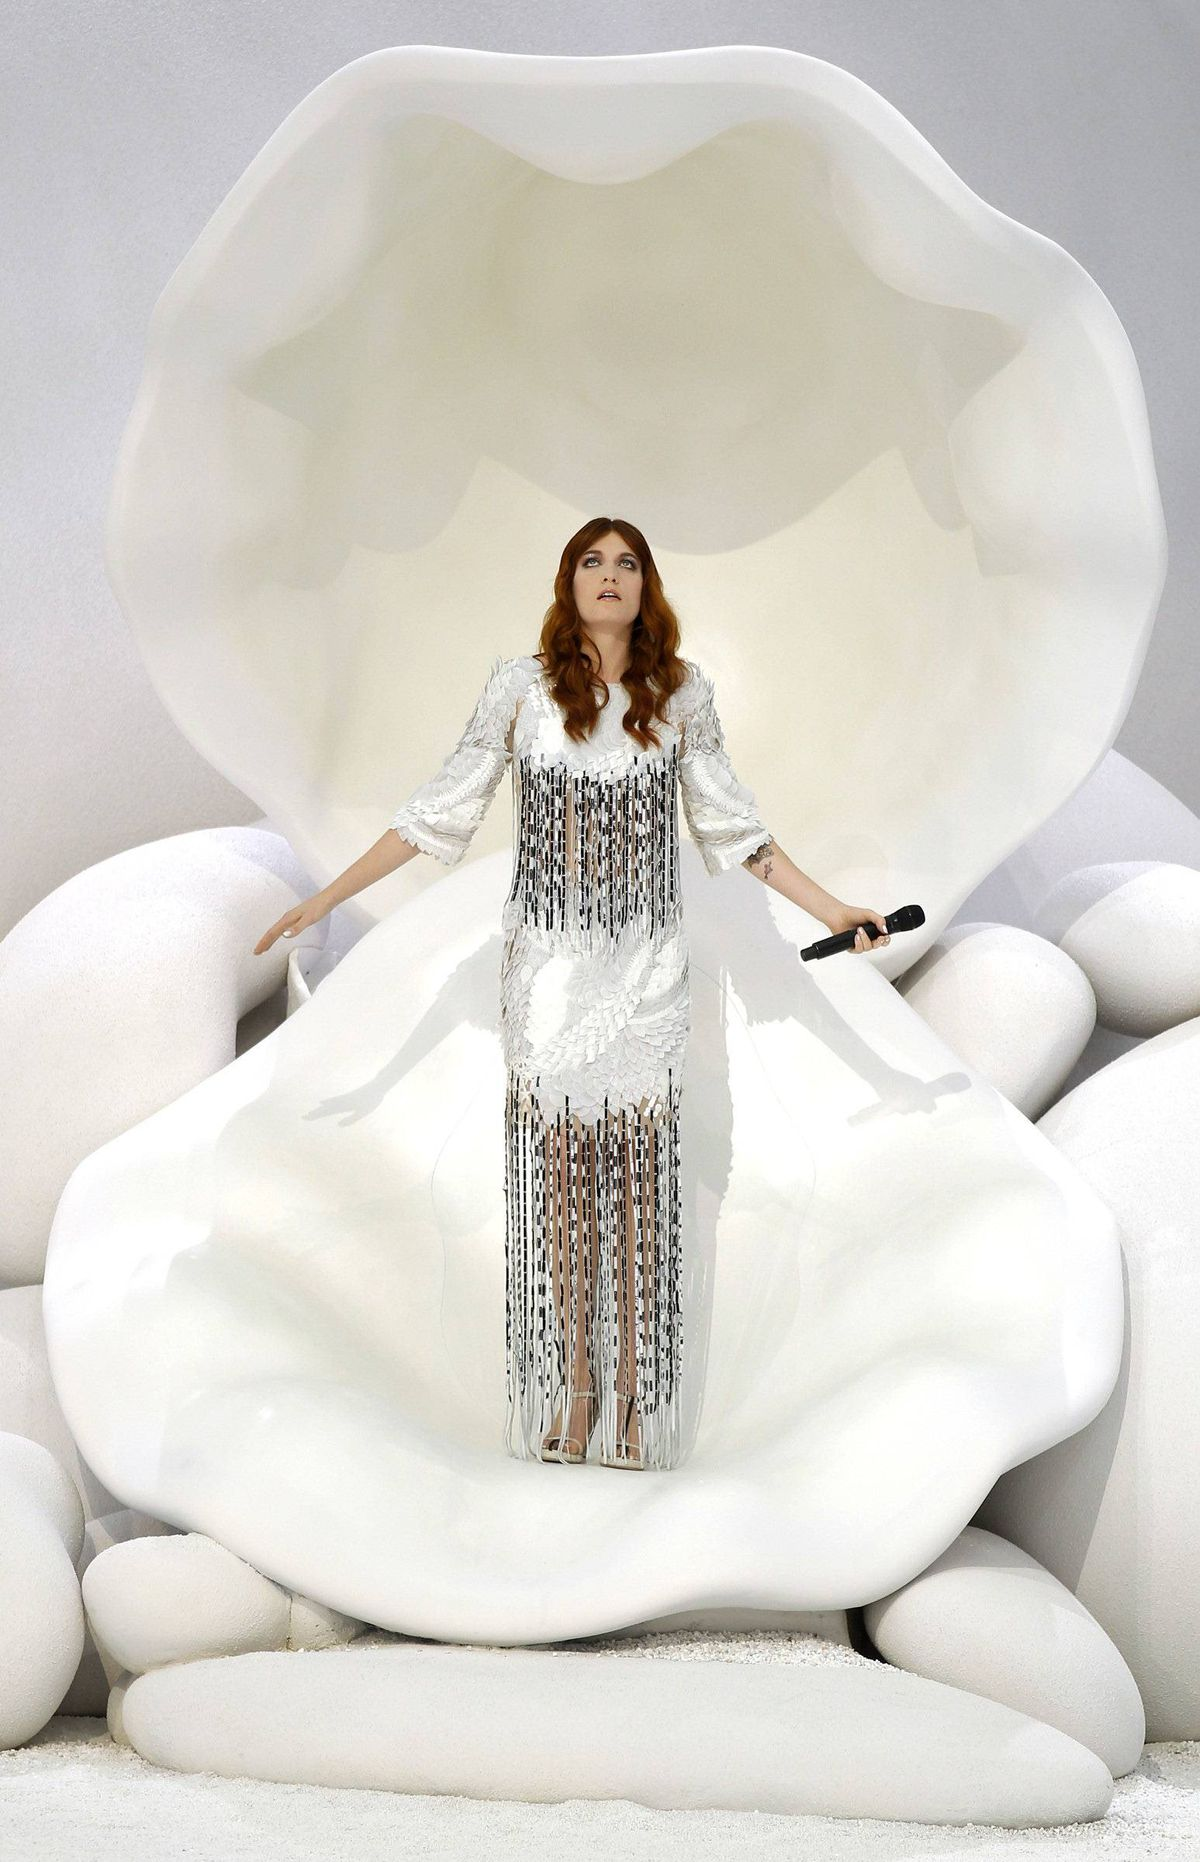 Hotshot chanteuse Florence Welch of Florence and the Machine belted out from a giant shell, Birth of Venus-style.